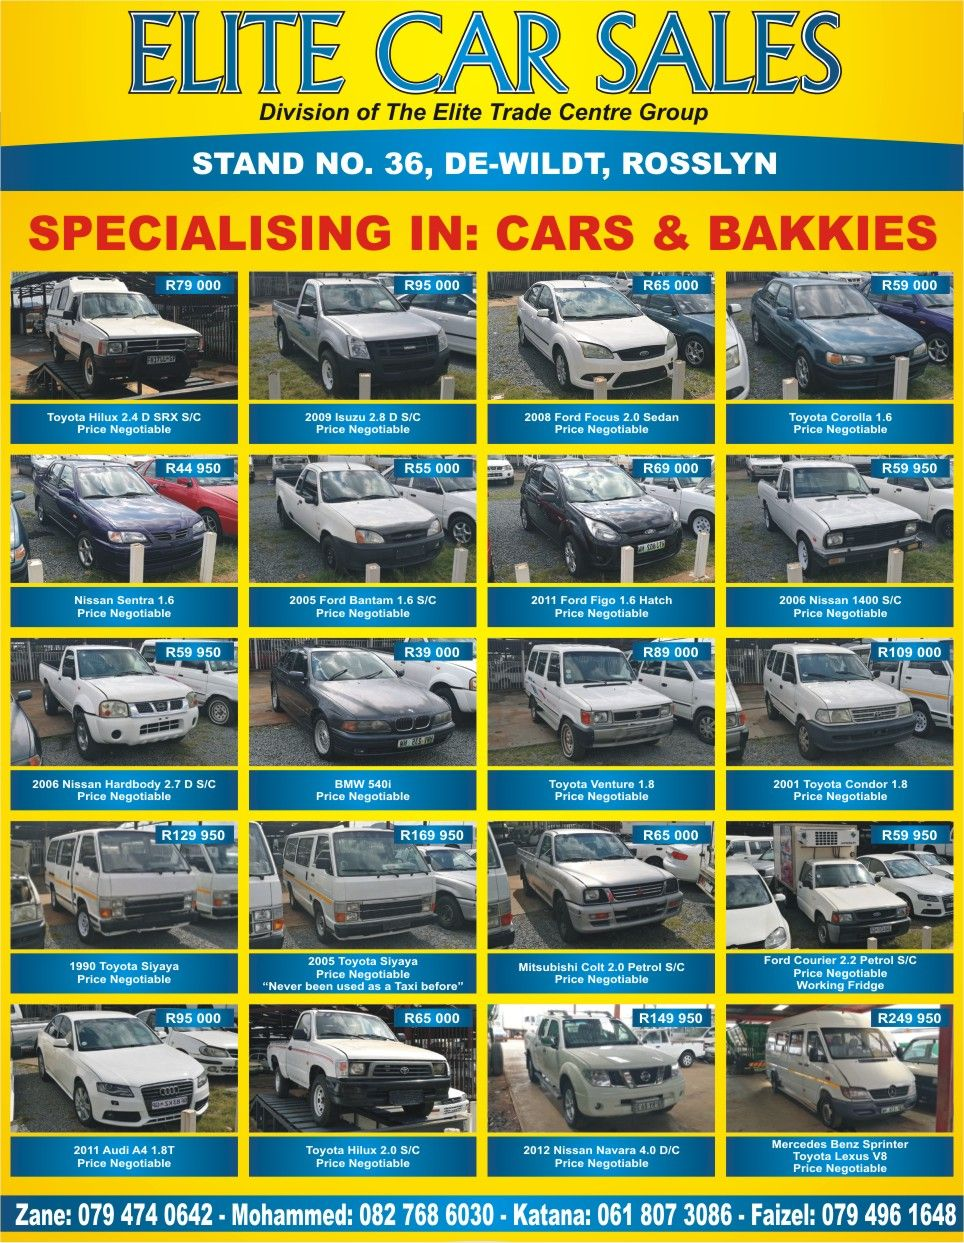 Specializing in cars and bakkies at elite car sales division of the